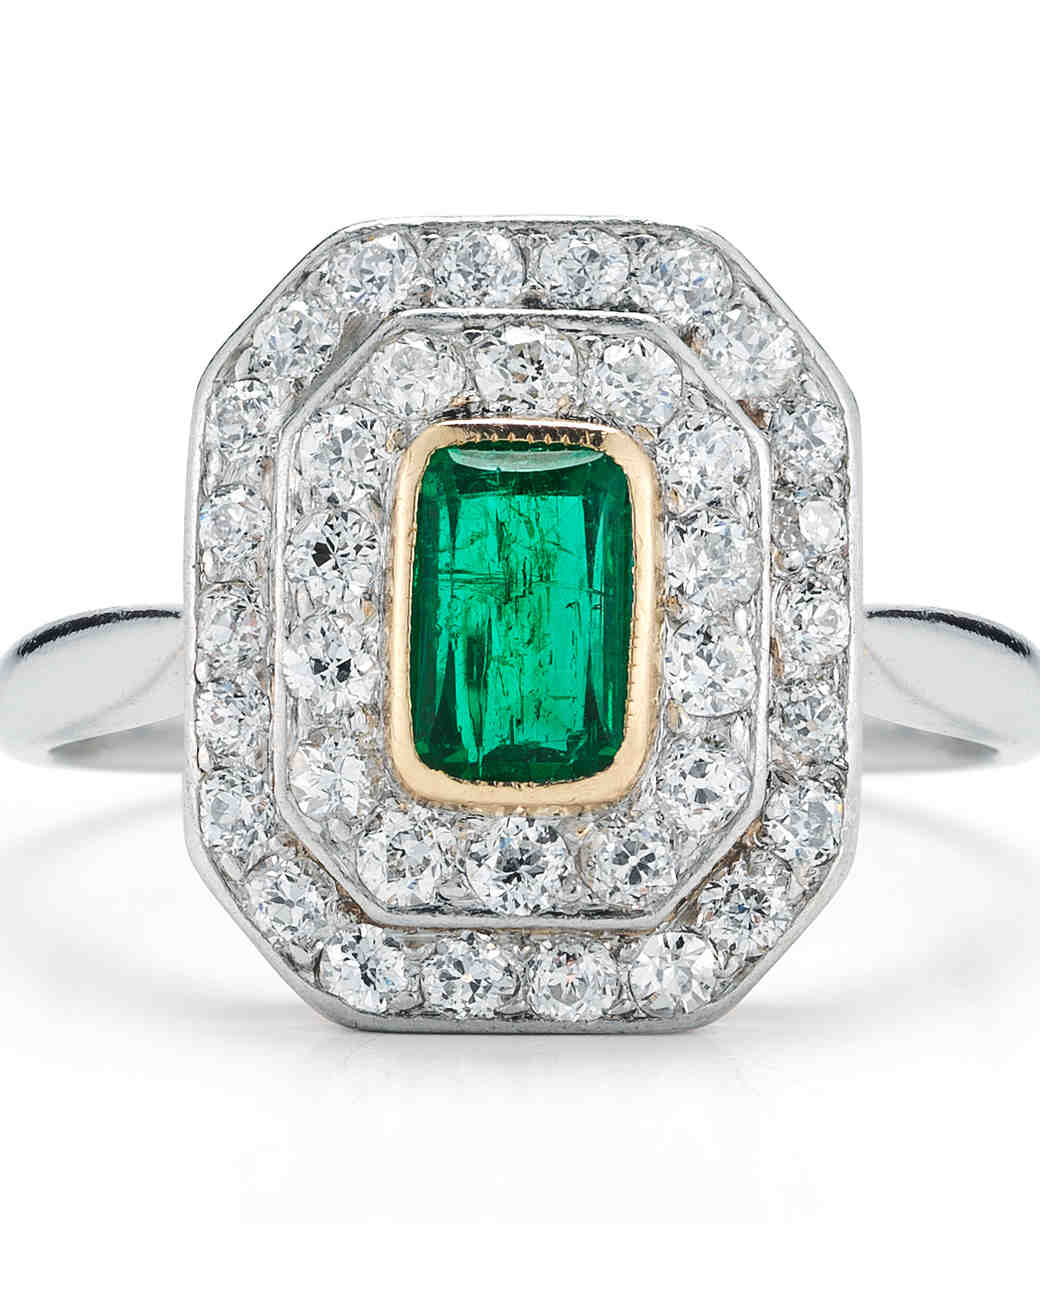 McTeigue and McClelland vintage art deco engagement ring with emerald